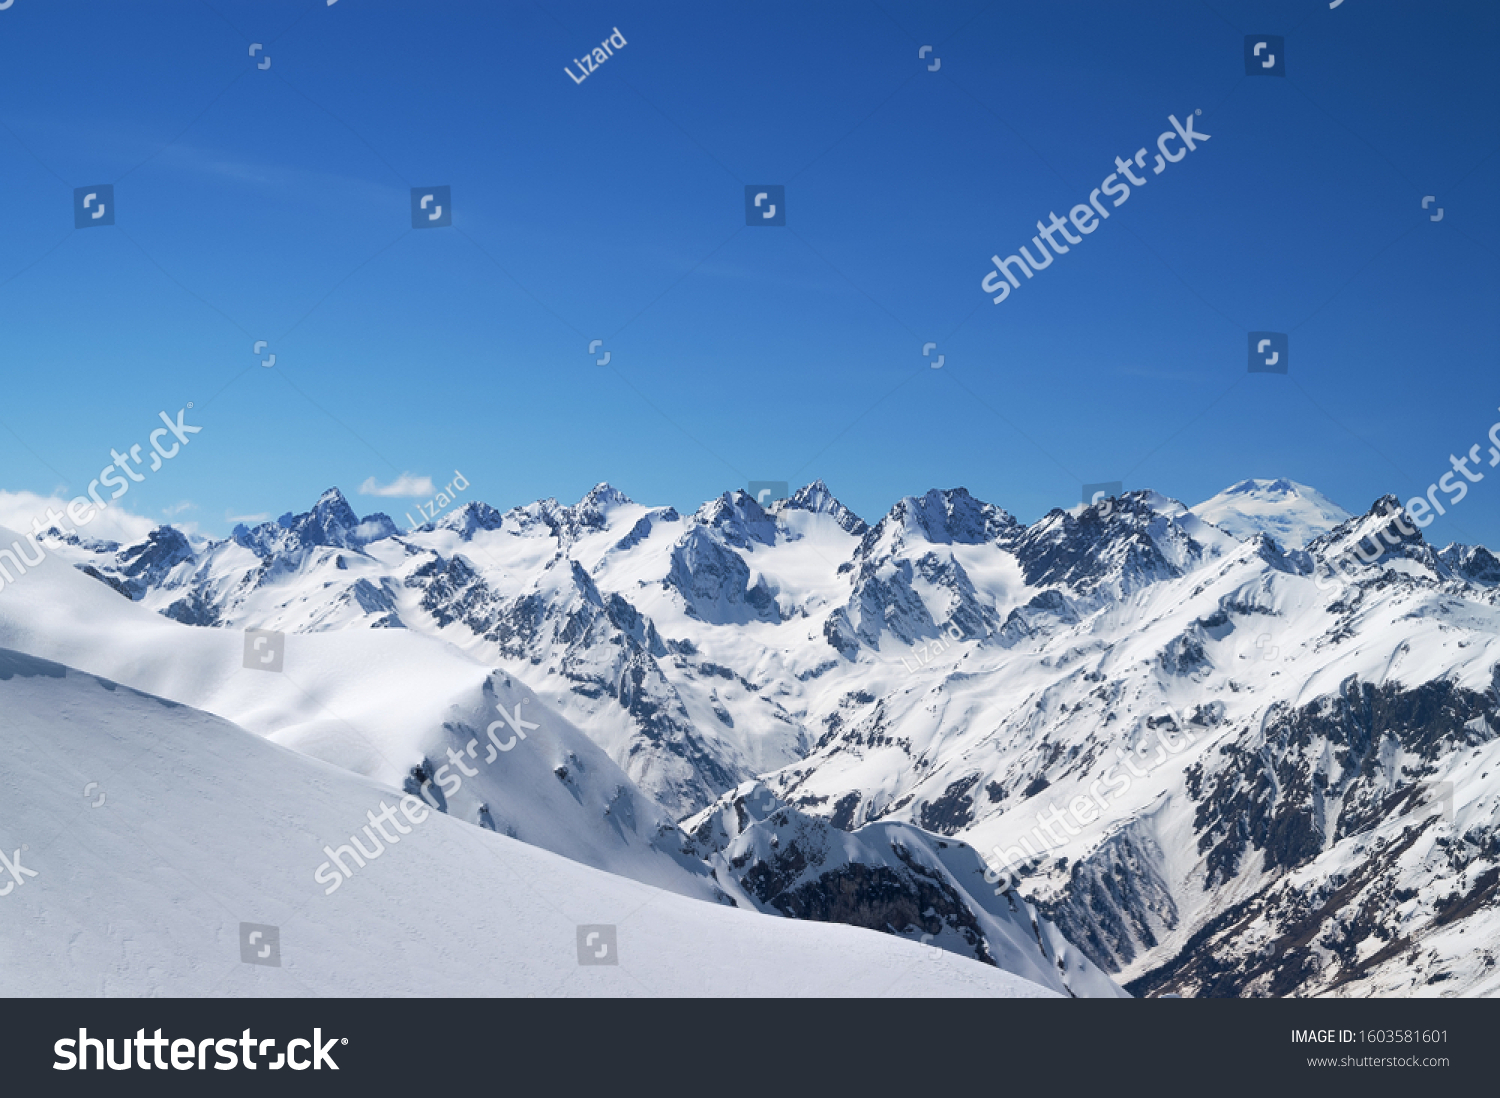 Snow Covered Mountains Snowy Offpiste Slope Stock Photo